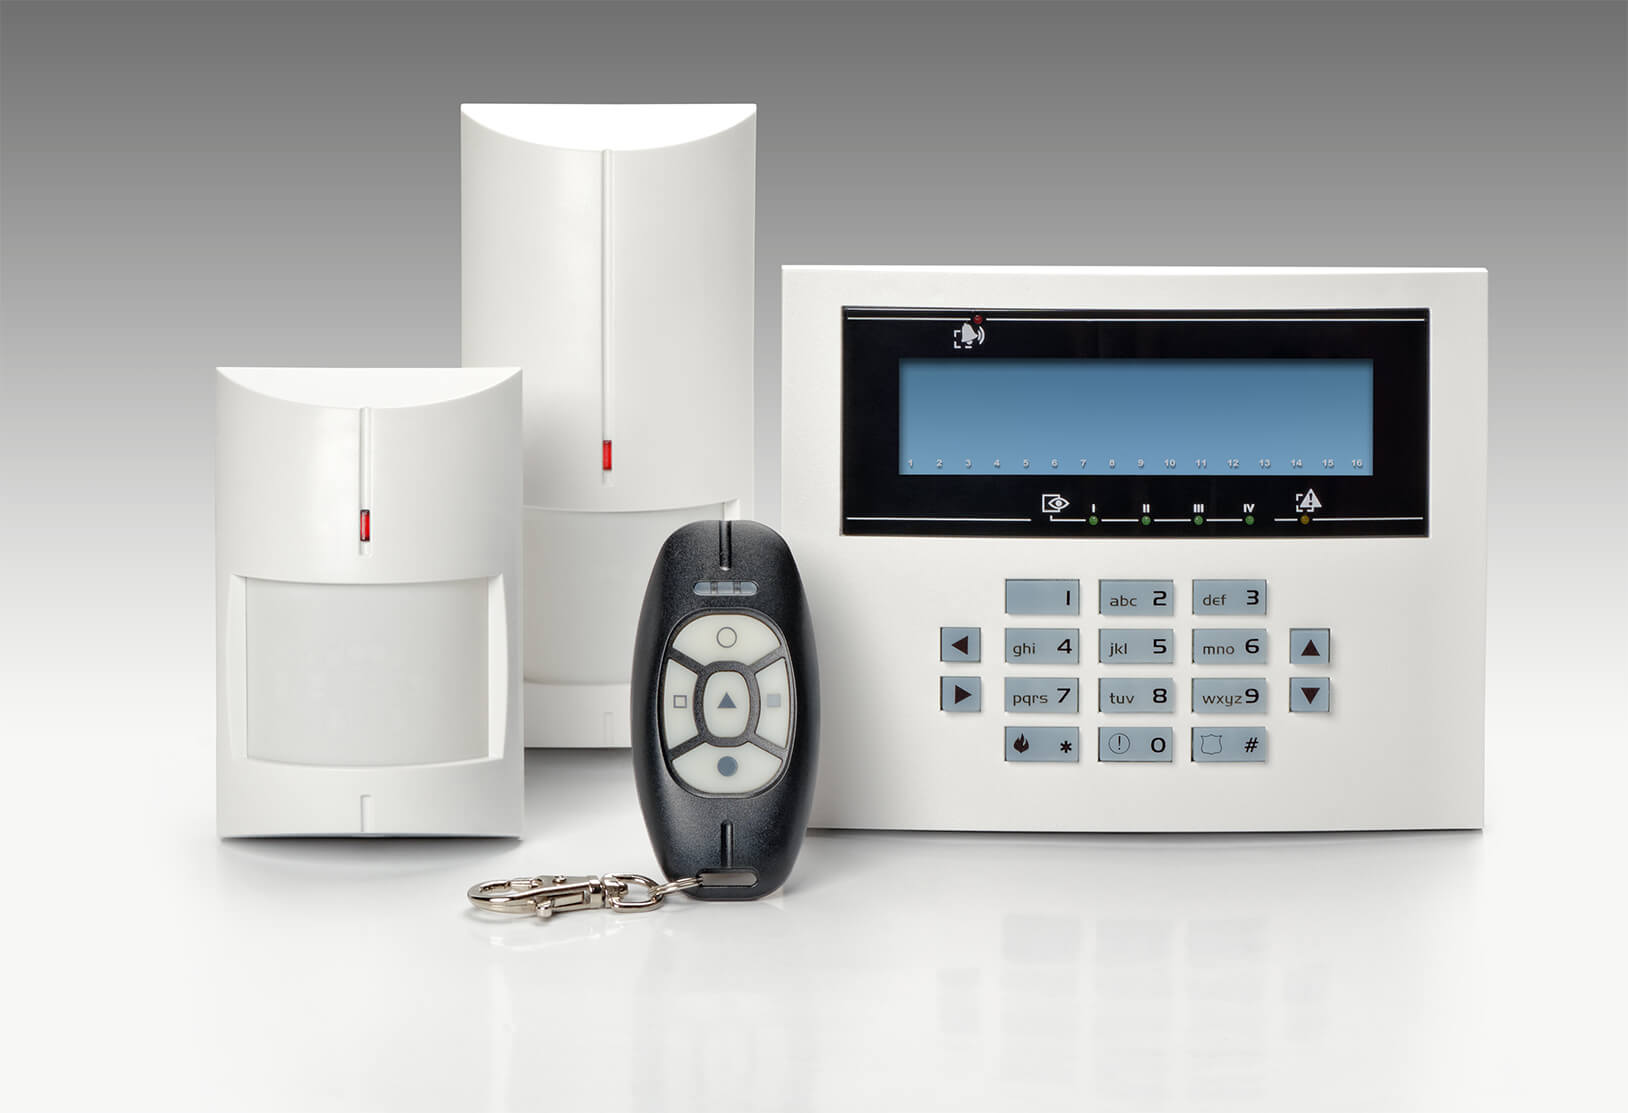 Business & Residential NACOSS Approved Burglar Alarms In Camberwell SE14 - Local Camberwell SE14 security company.Call 02078872244 - Dedicated to Safety & Security. Companies, shops and homes ..